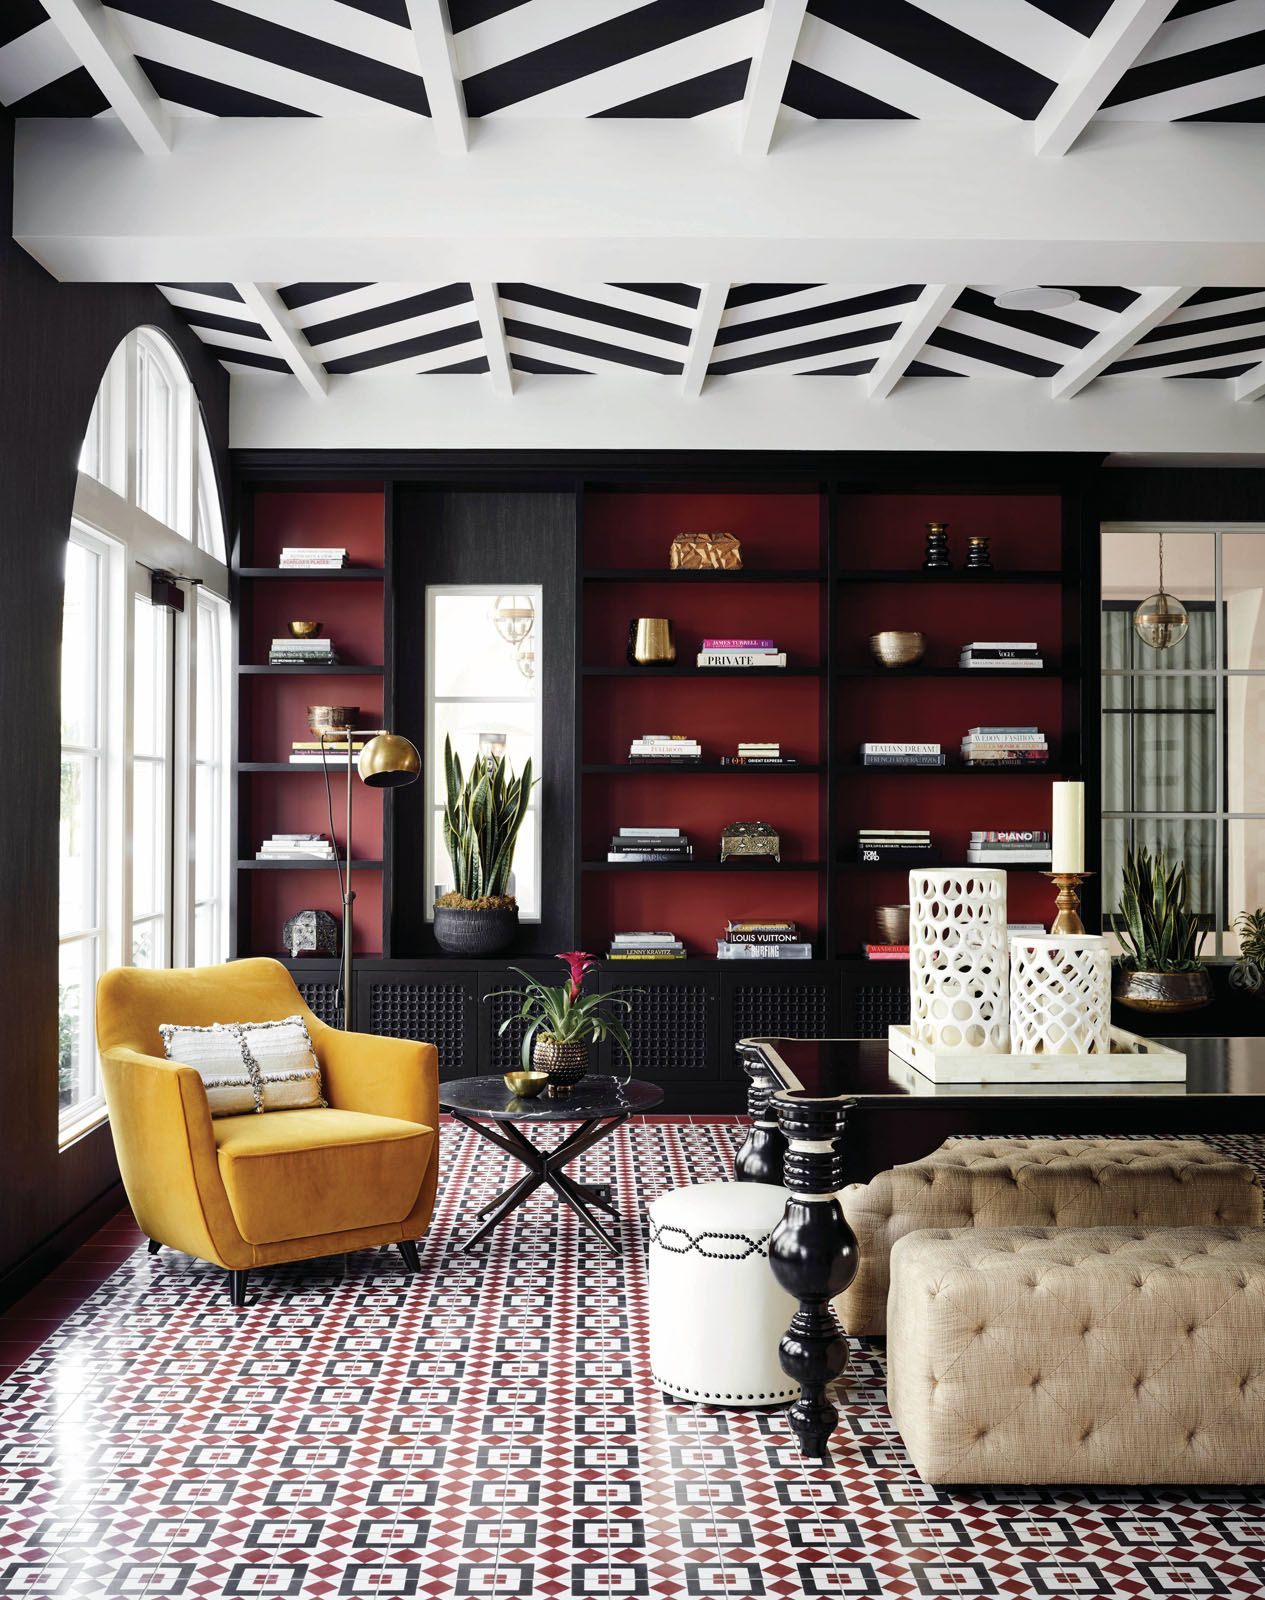 The lobby of Hotel Californian is a lively mix of colour, texture and pattern